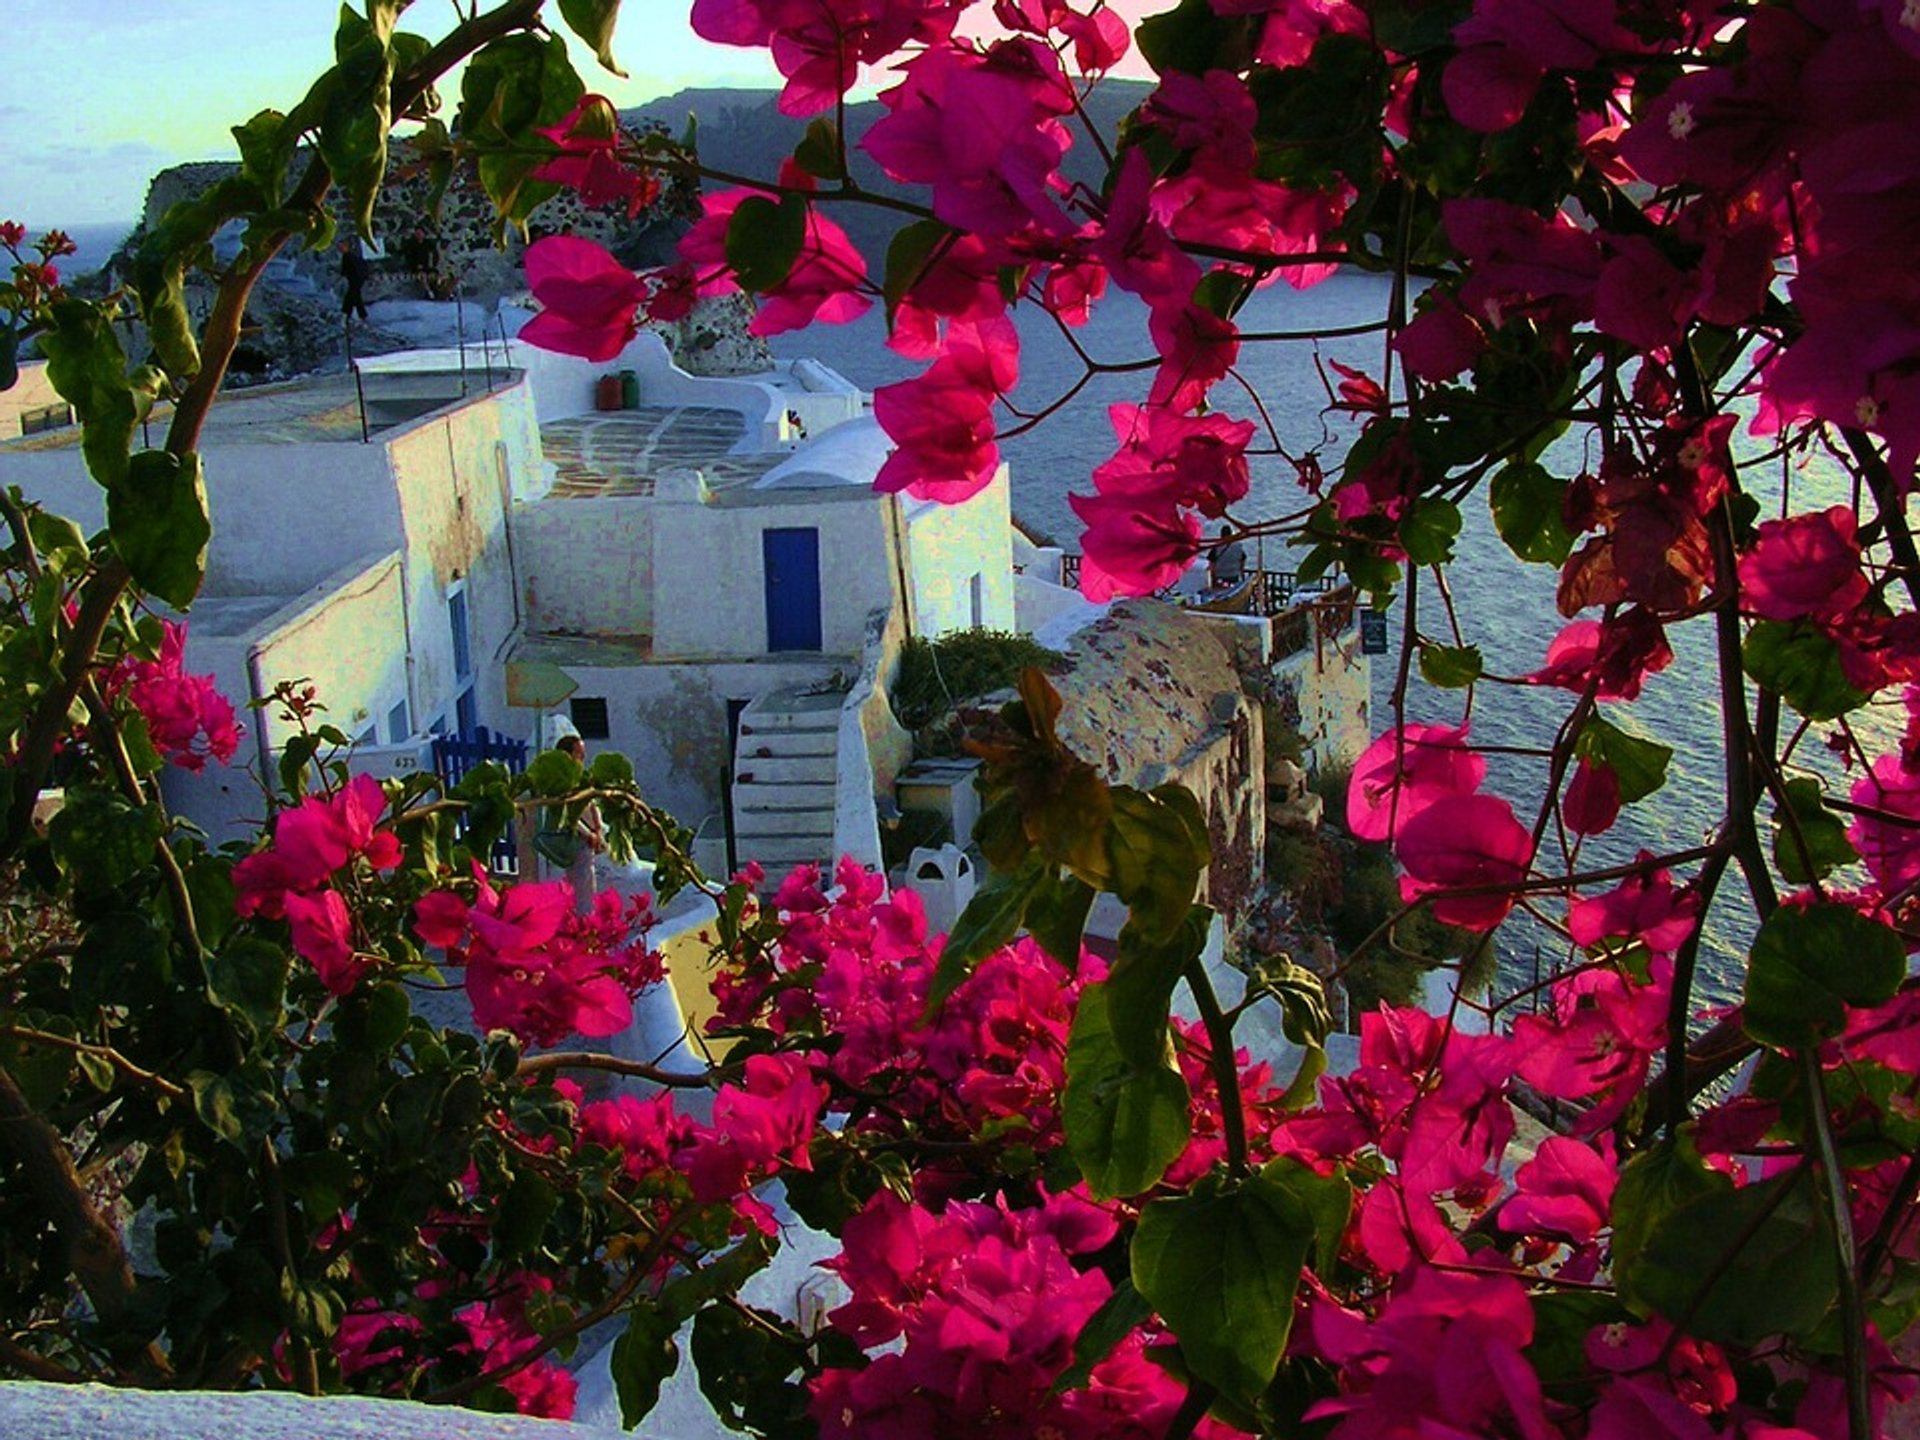 Fuchsia Bougainvillea Bloom in Santorini 2019 - Best Time